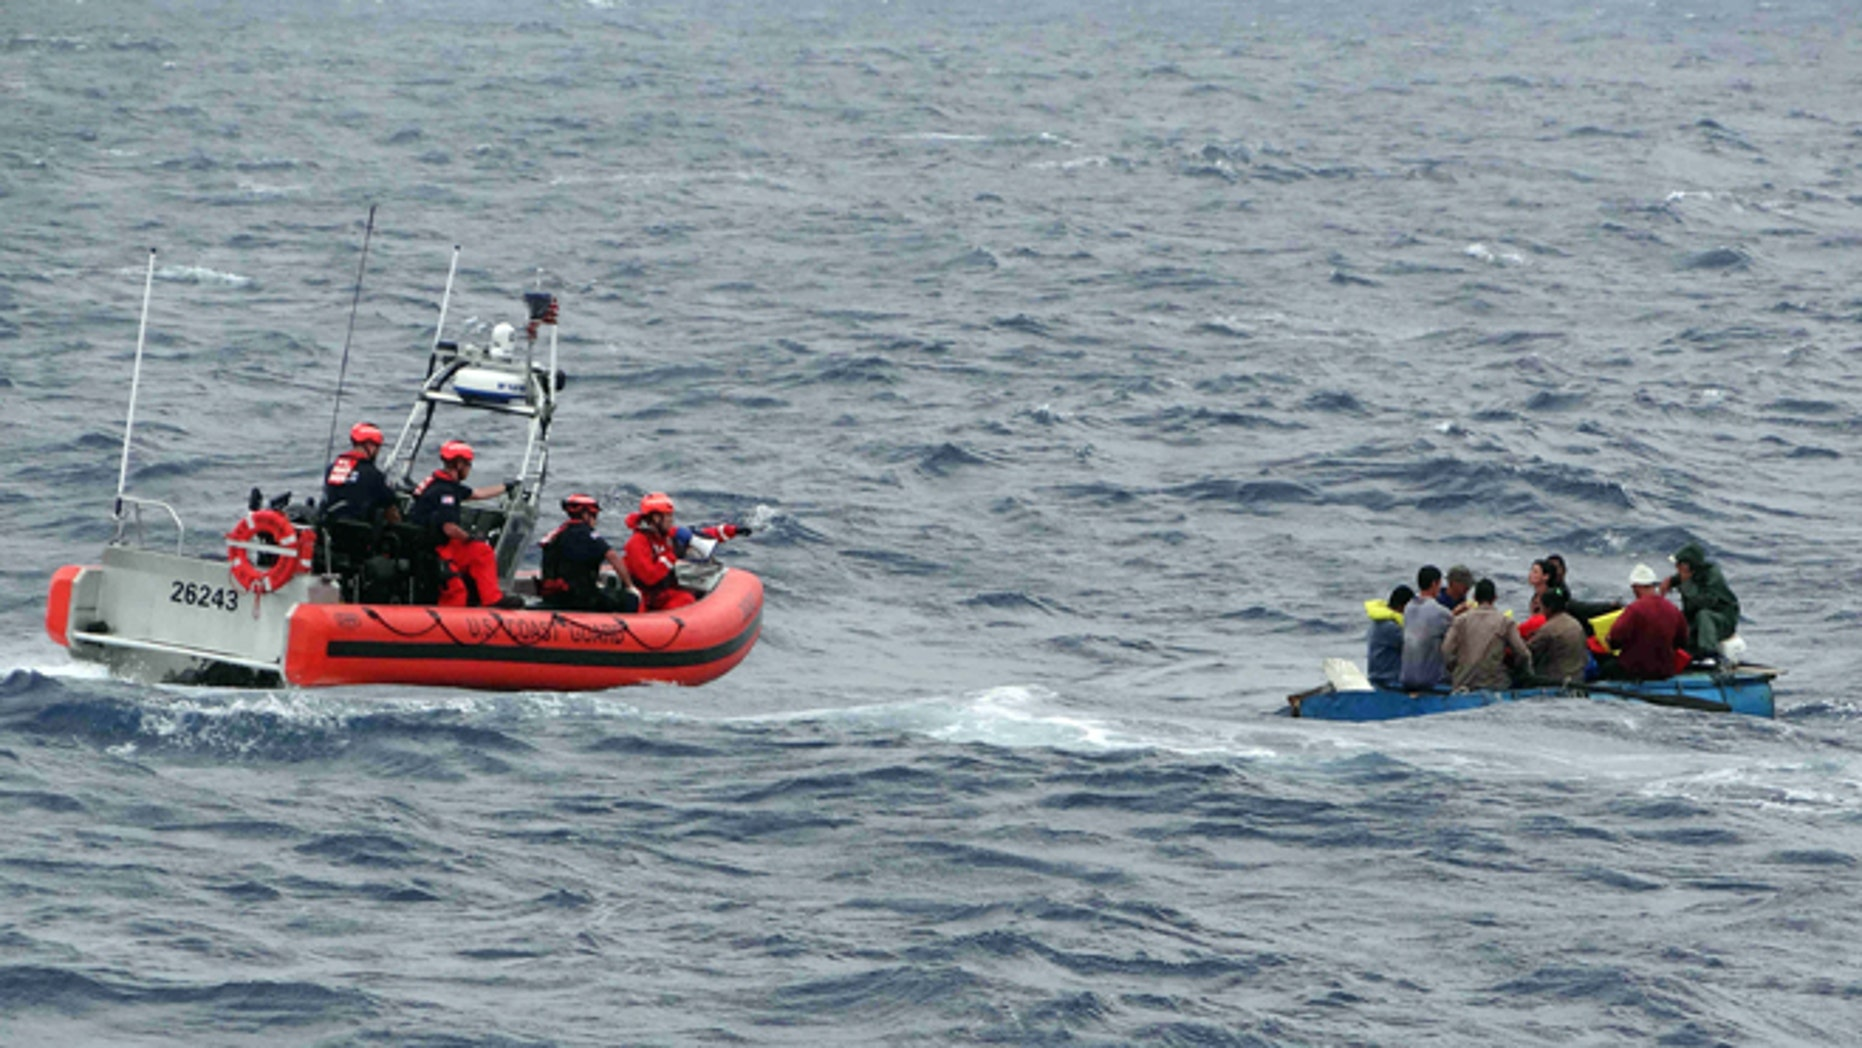 Coast Guard personnel left, try to assist a group of Cuban migrants on a makeshift vessel in the Florida Straits.